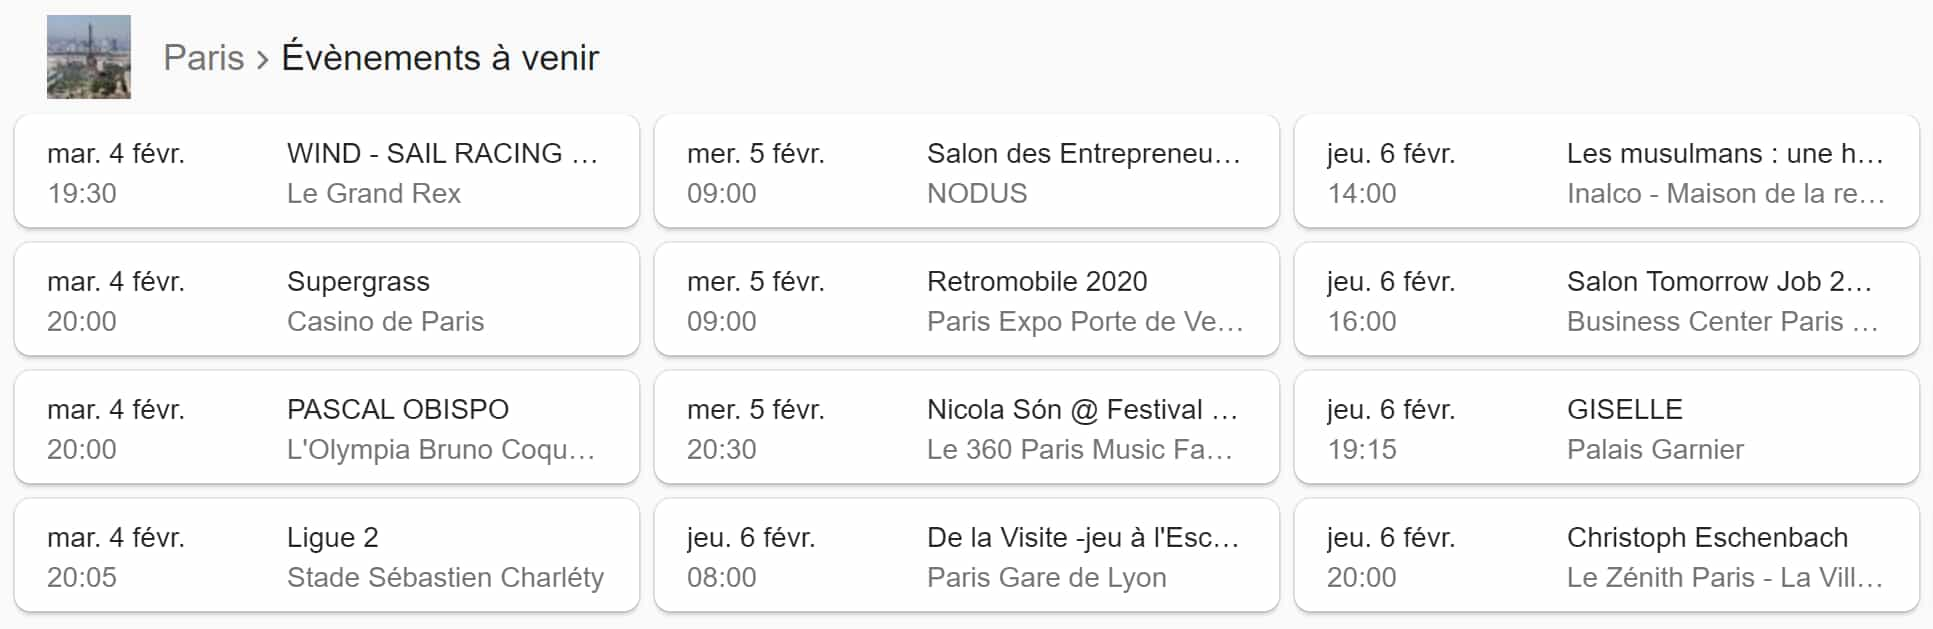 Results for events in Paris